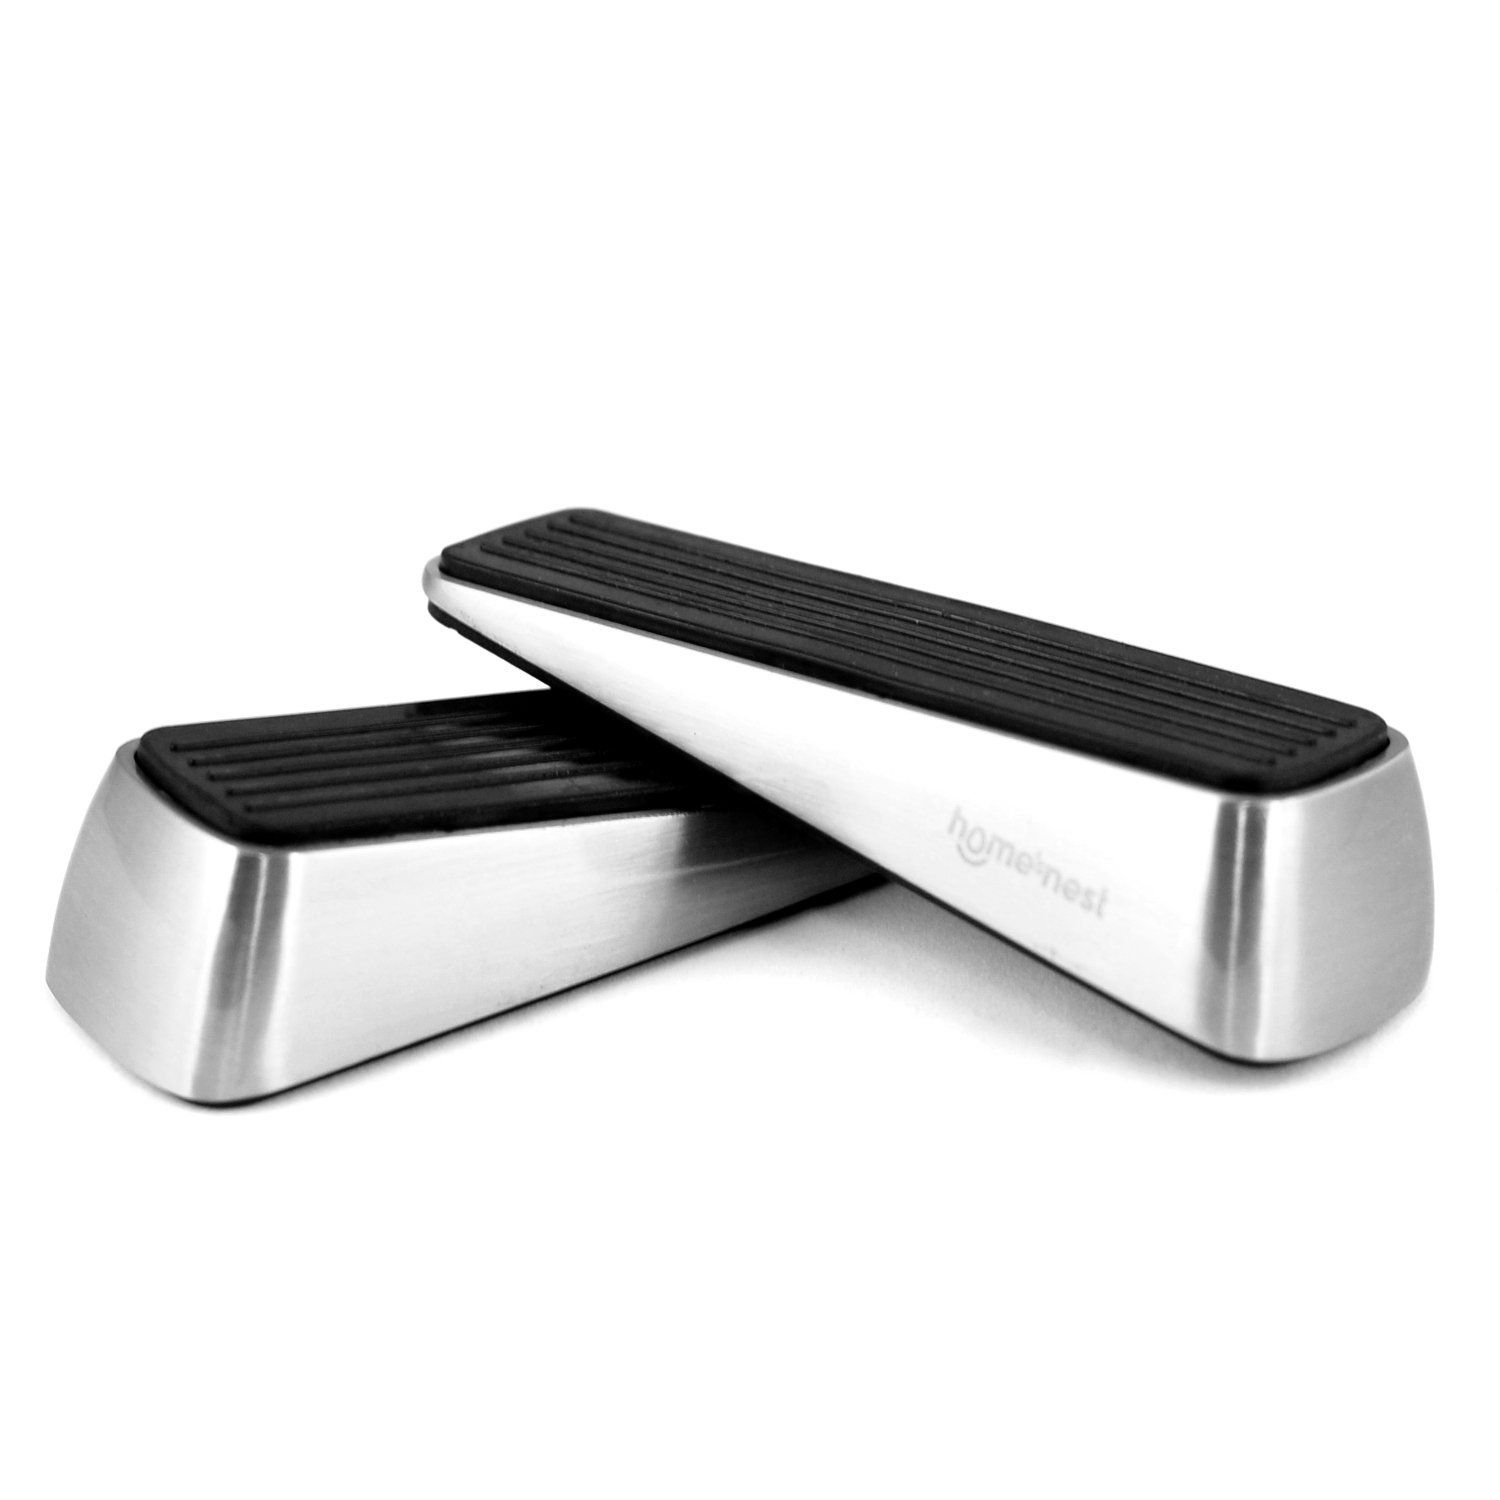 homesnest door stopper made of stainless steel and rubber easily wedge heavy doors on all floor surface strong grip nonslide bonus finger protector